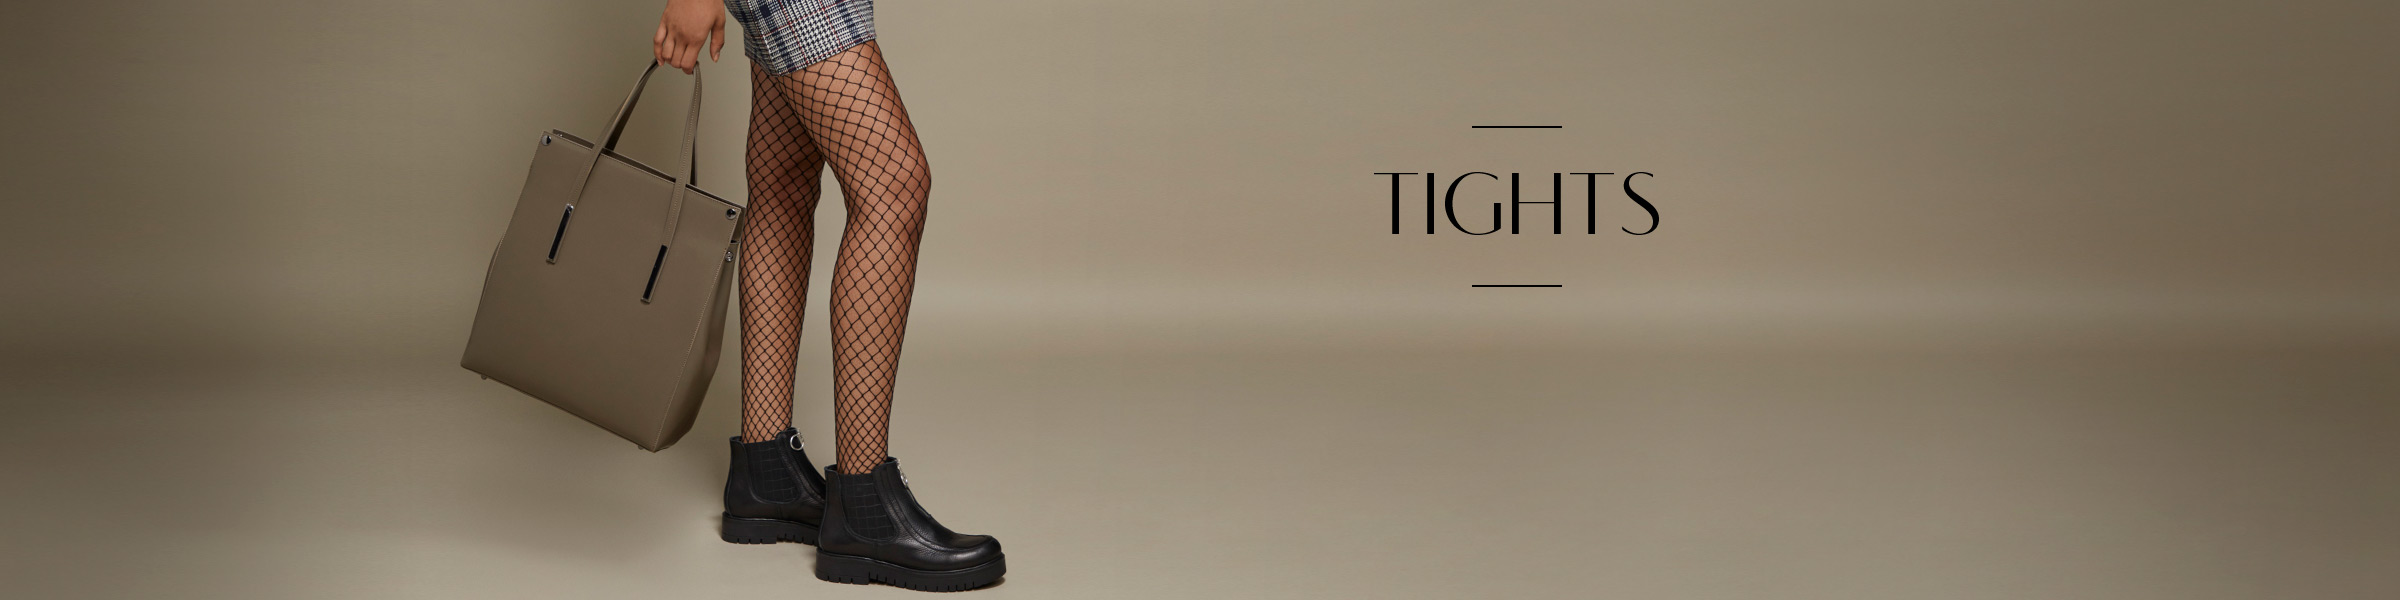 A18-TBGEN-FEMME-ACCESSOIRES_Collants et leggings_Collants.psd